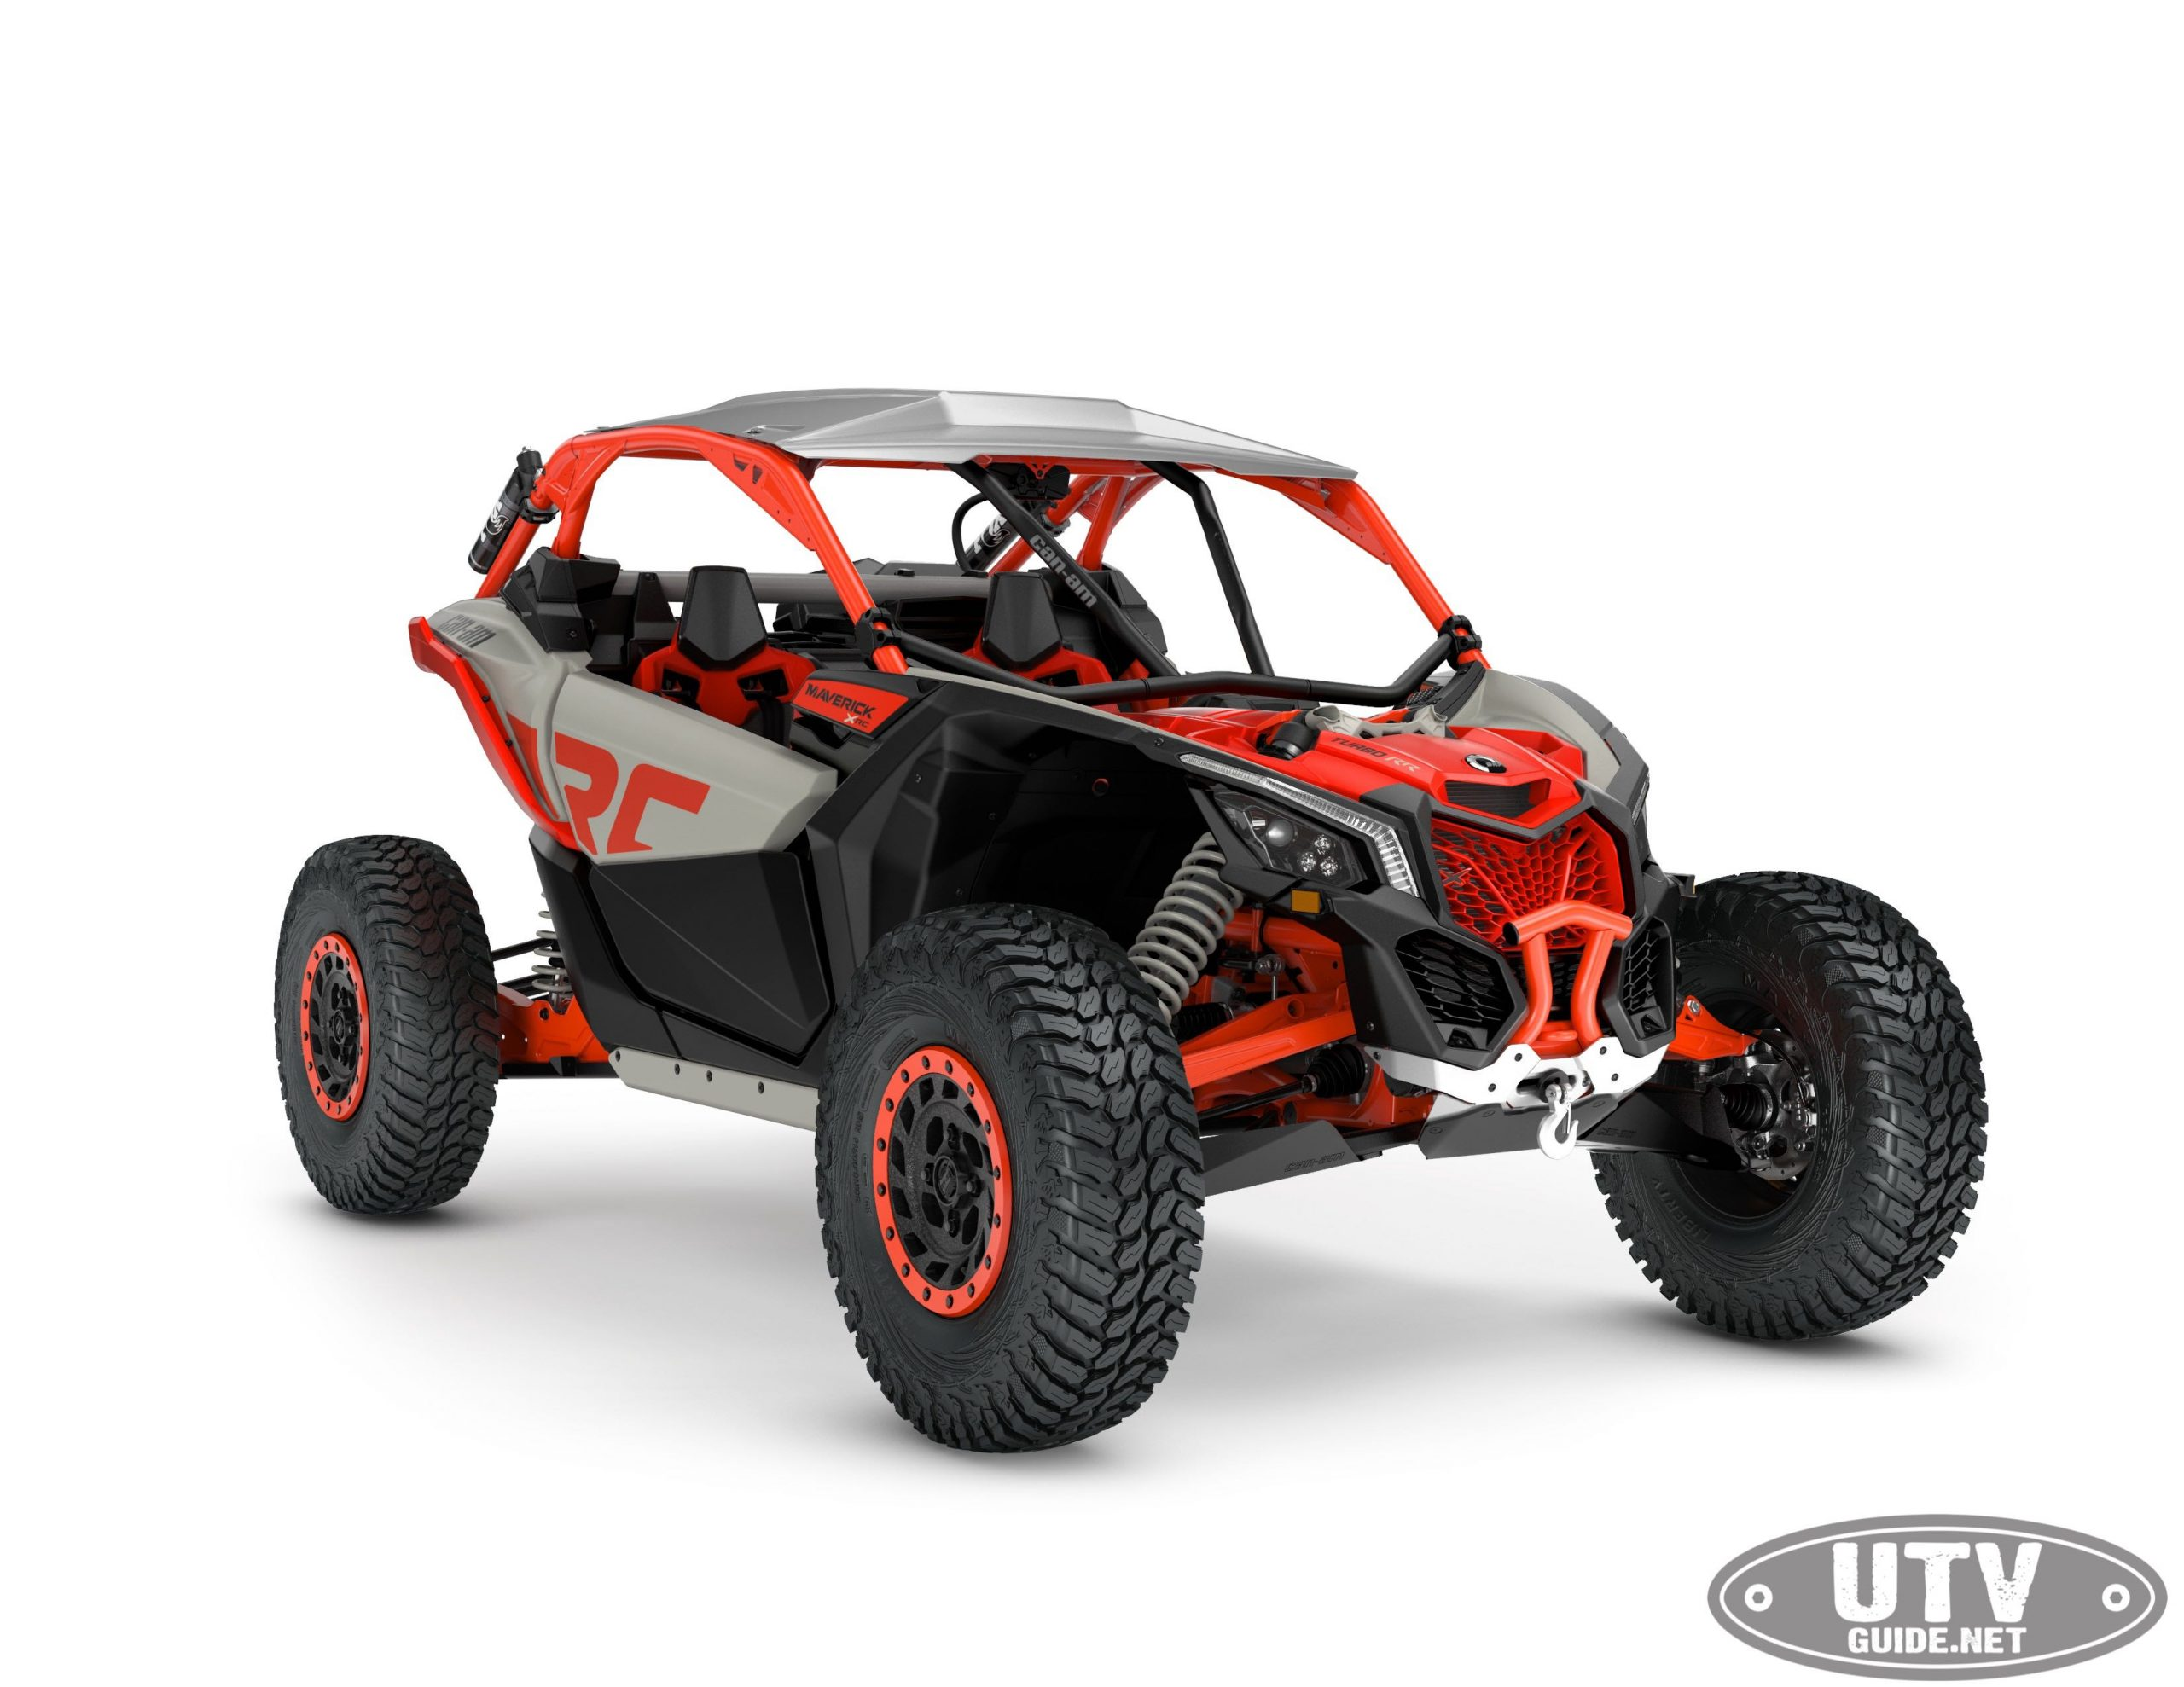 2021 Can-Am Maverick X3 Xrc Turbo RR